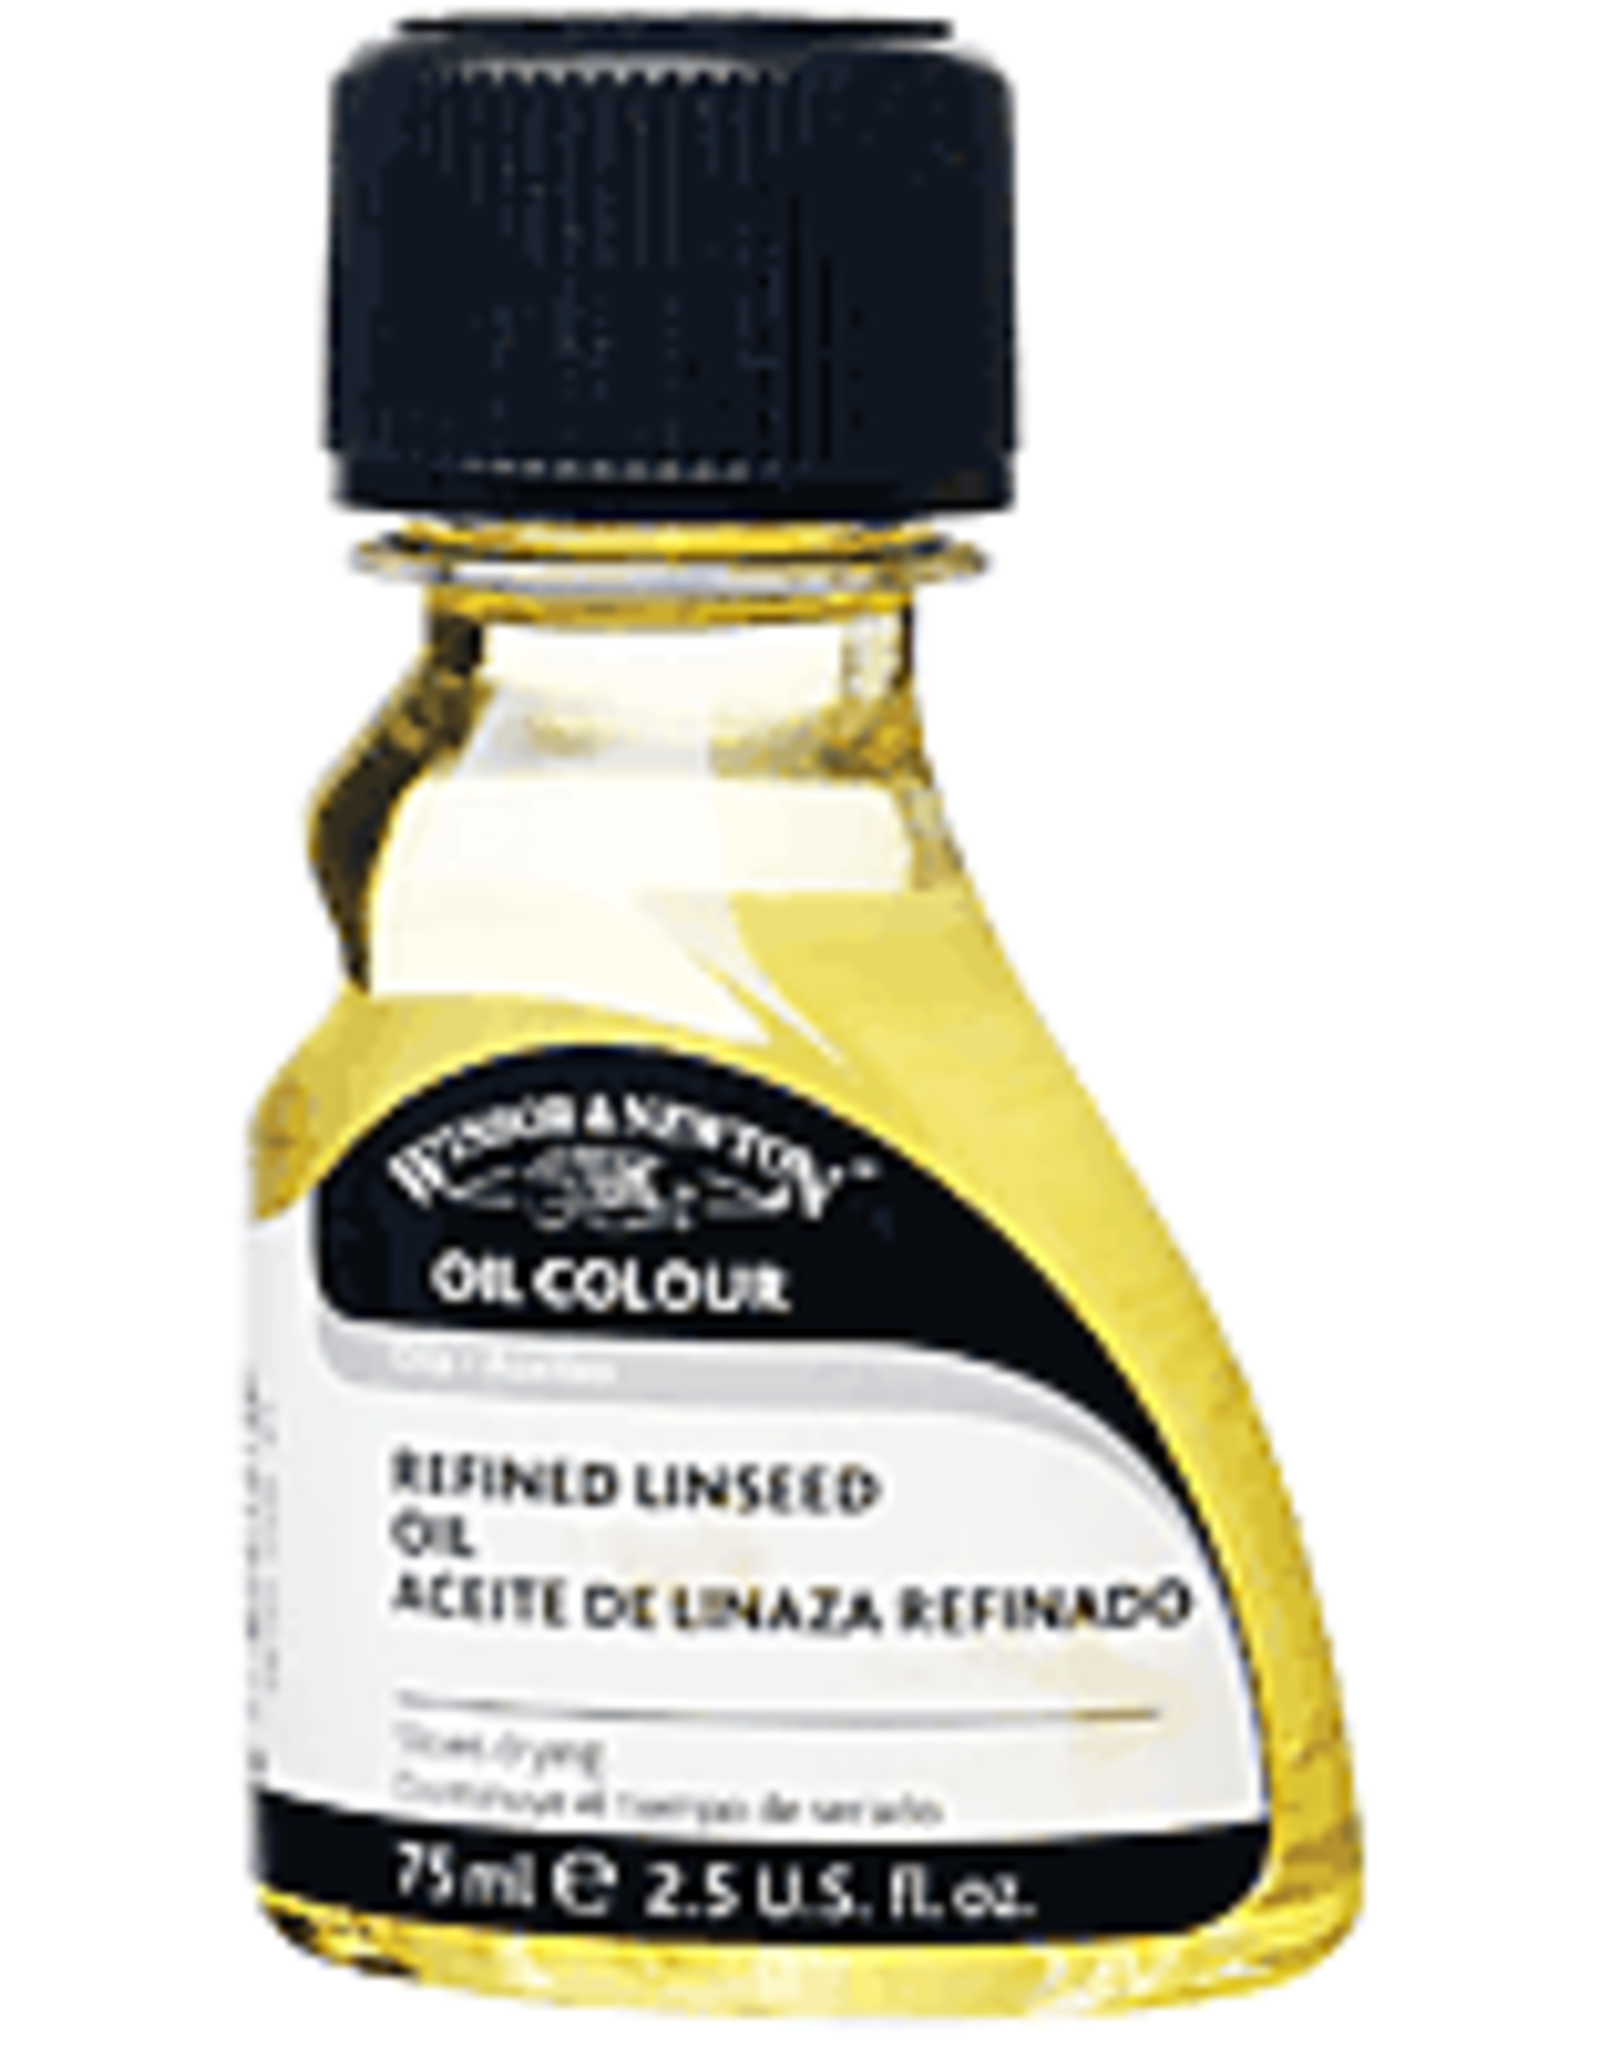 Refined Linseed Oil 75ml